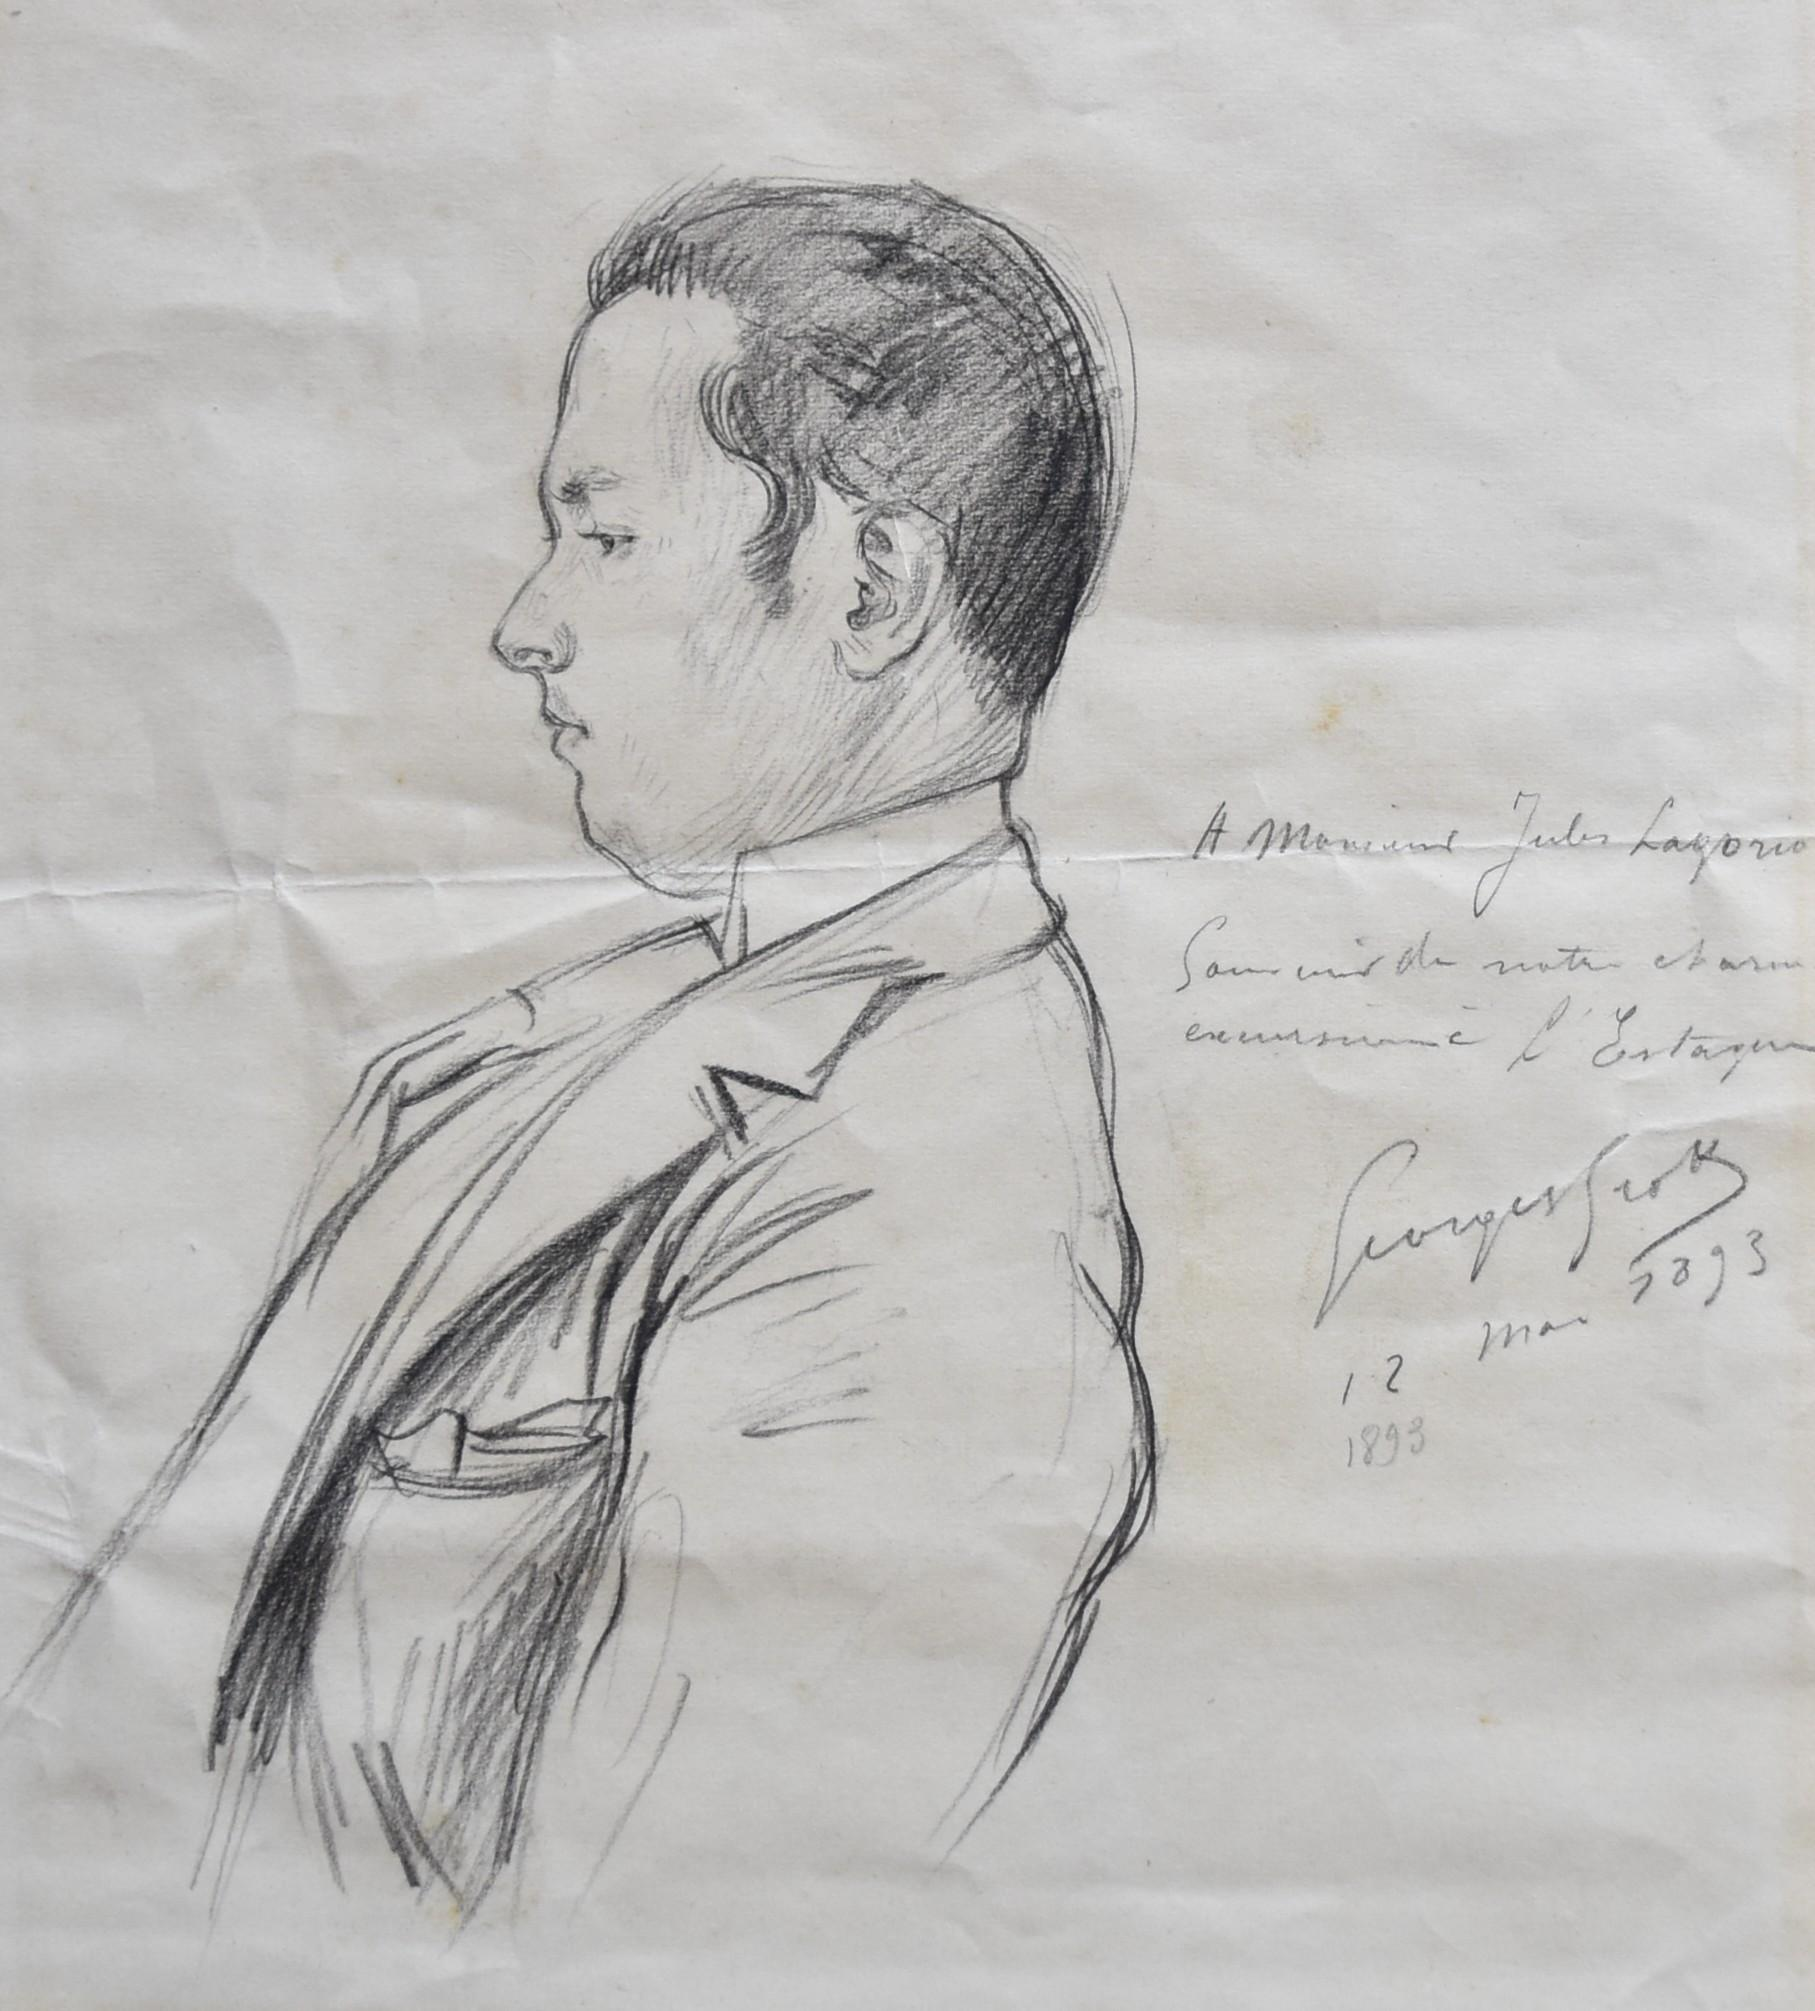 Georges Scott (1873-1943) Portrait of Jules Lagorio 1893, signed drawing